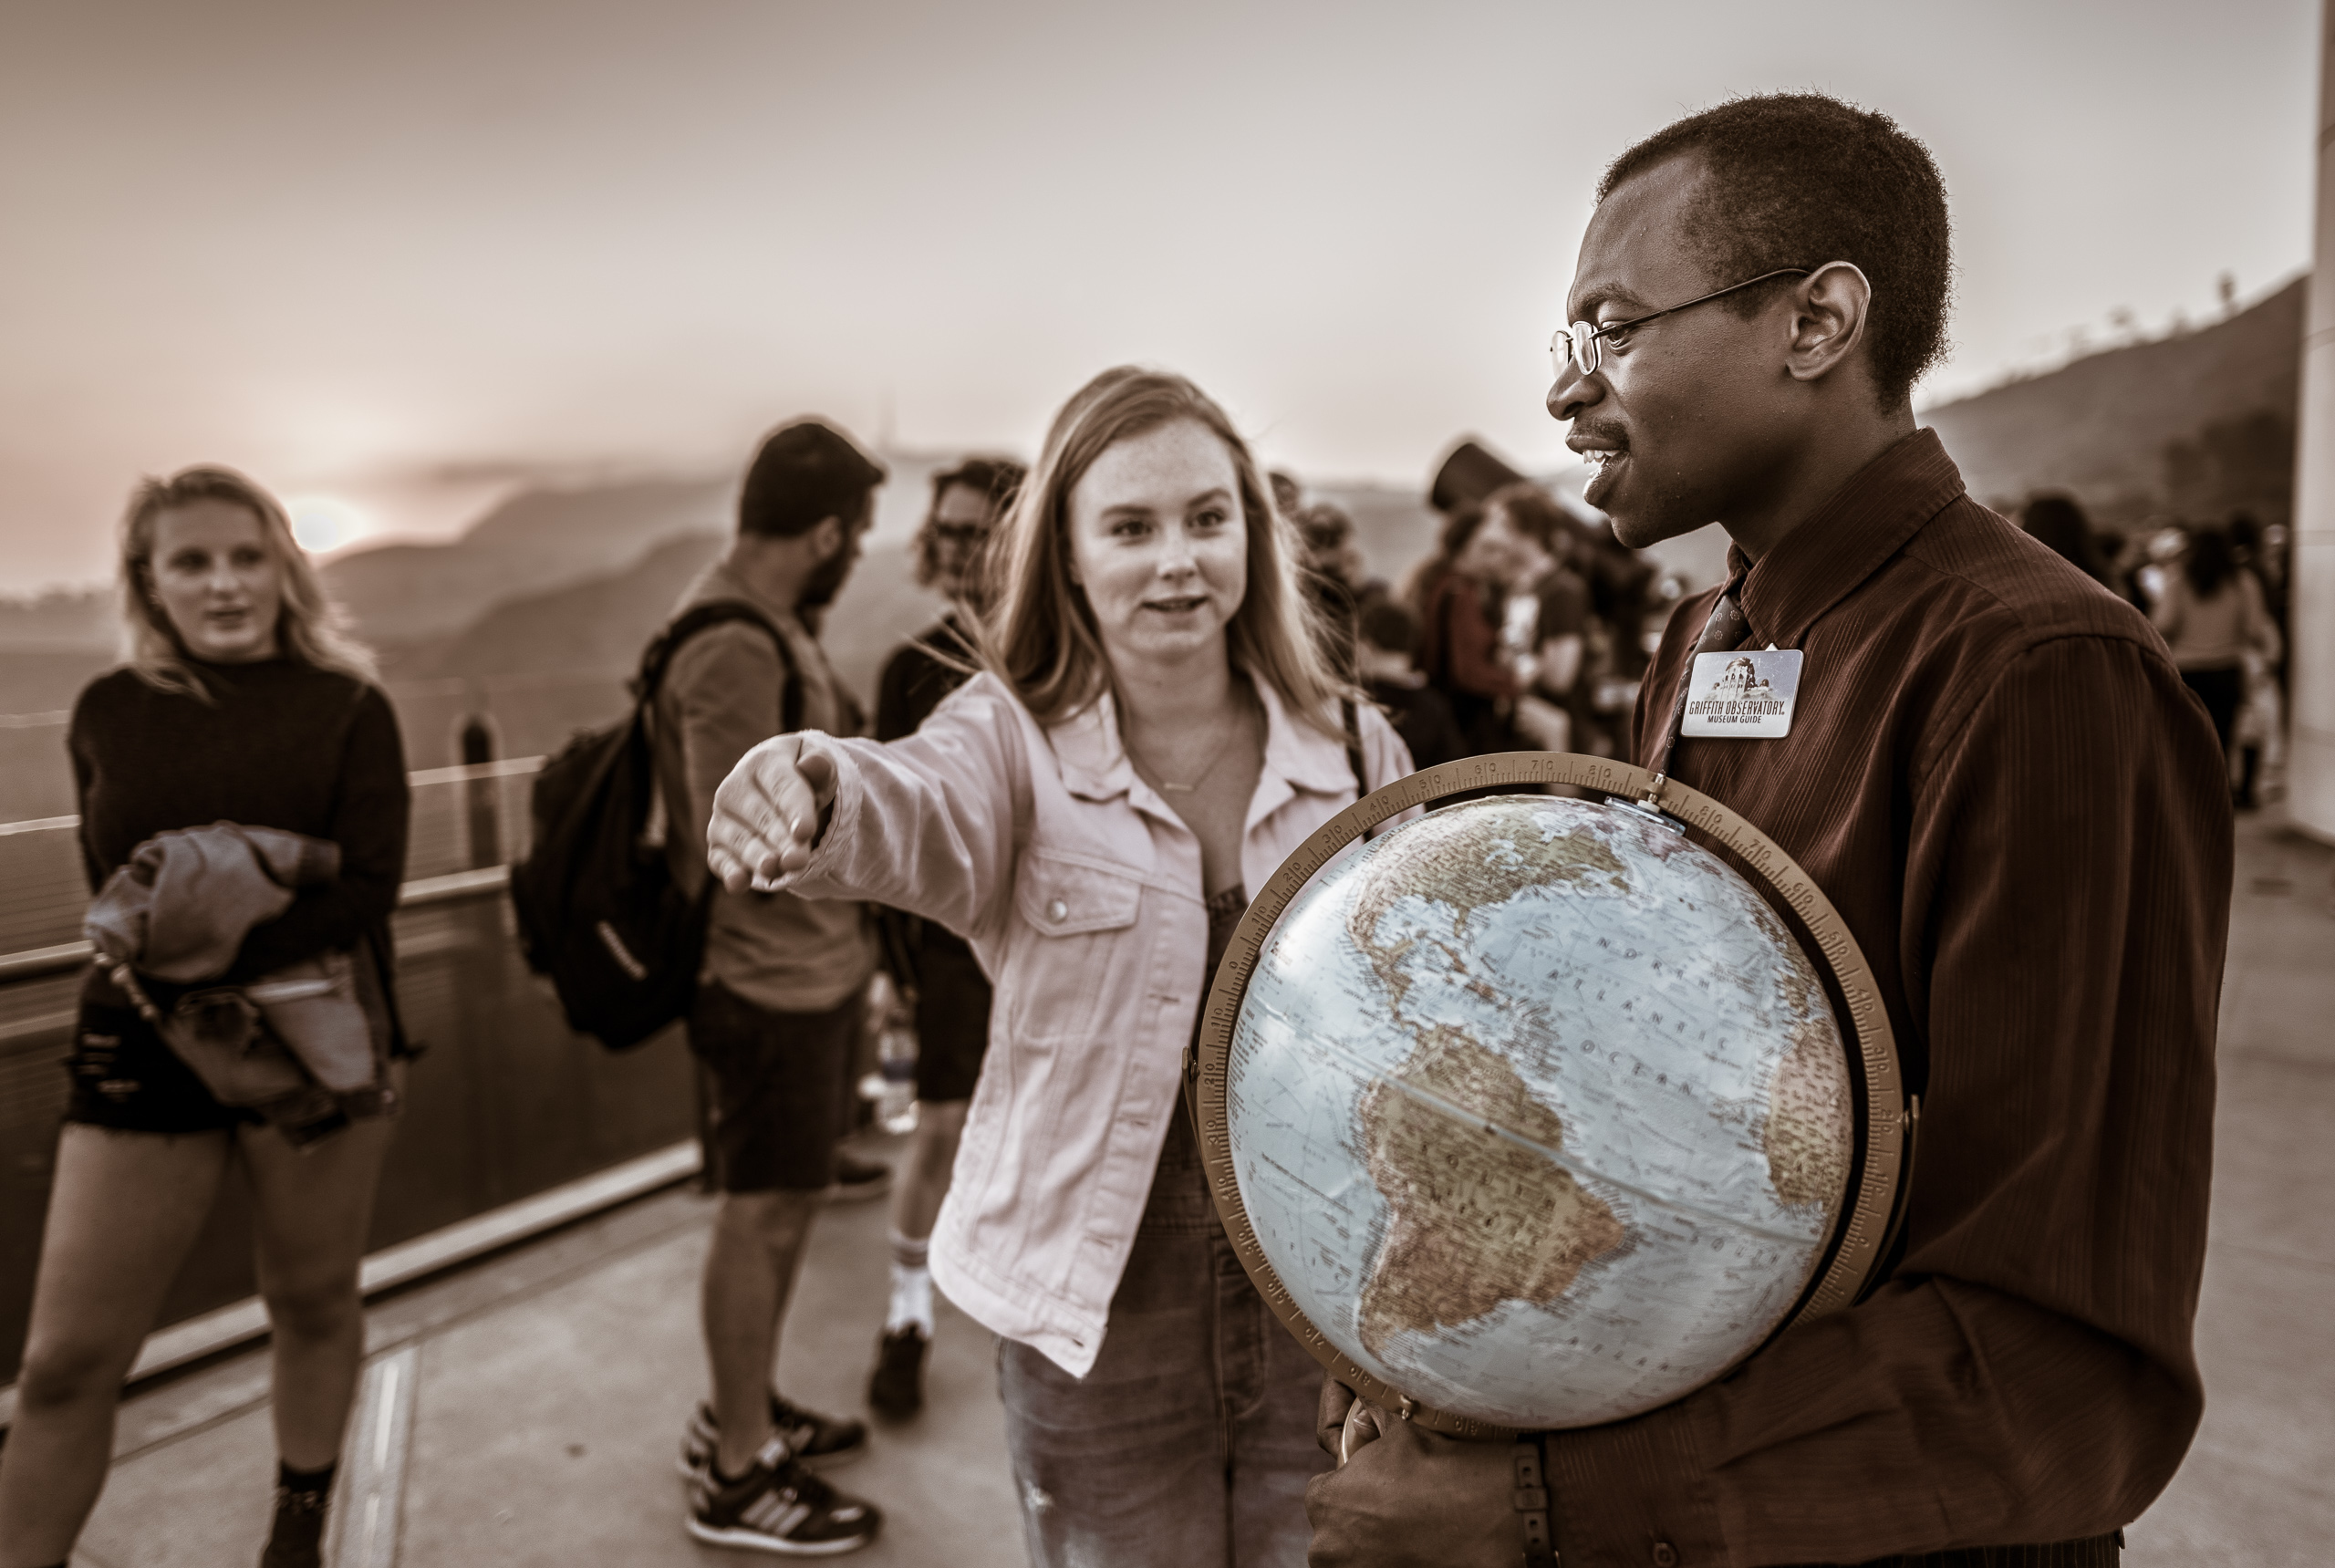 A Griffith Observatory employee holds a globe in his hand as an observatory visitor asks him an astronomy question